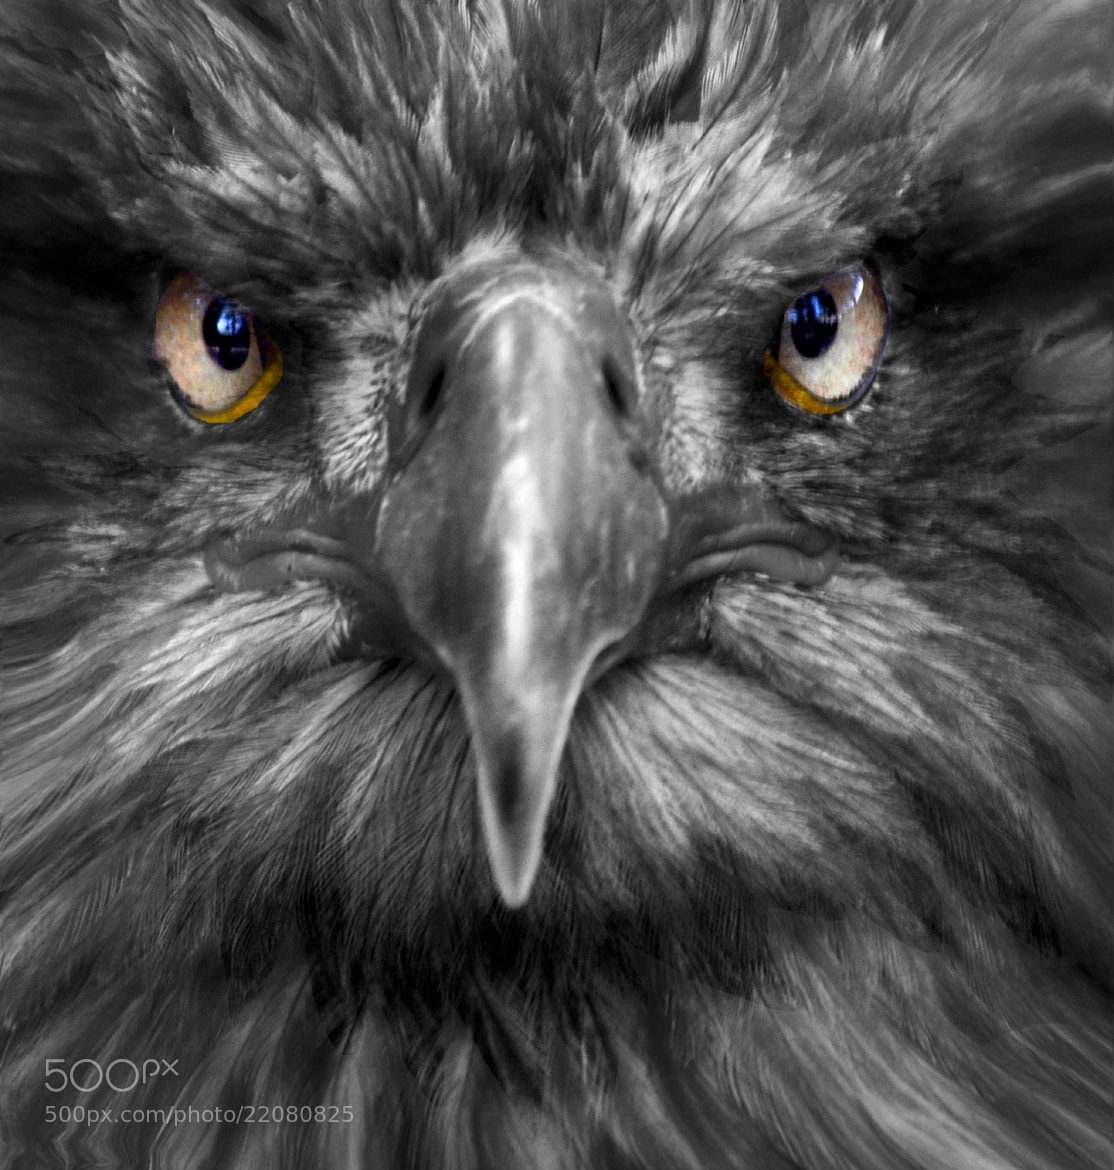 Photograph Impressive eyes. by Duilio Pianelli on 500px